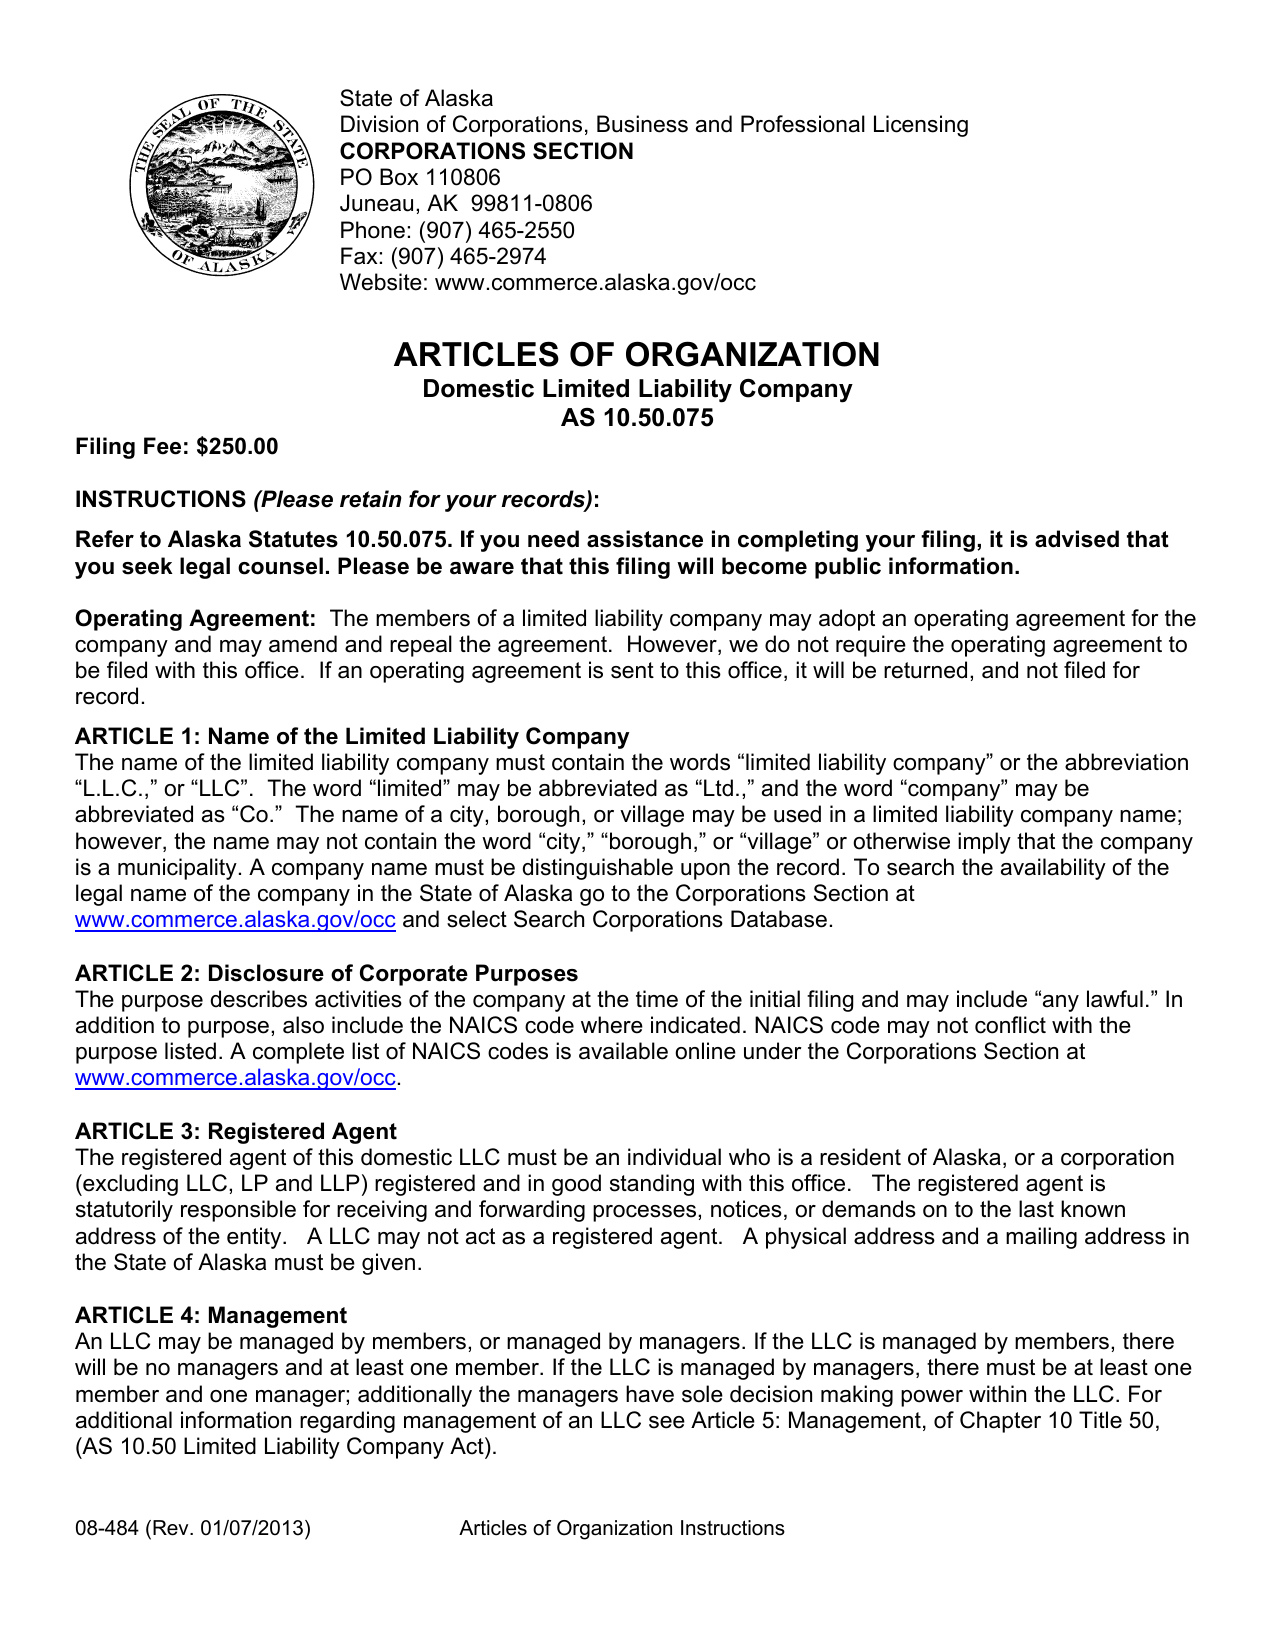 alaska-domestic-llc-articles-of-organization-form-08-484.pdf Online Loan Application Form on template free, print out eminent finance, african bank, sample small, uniform residential, sample home, blank business,